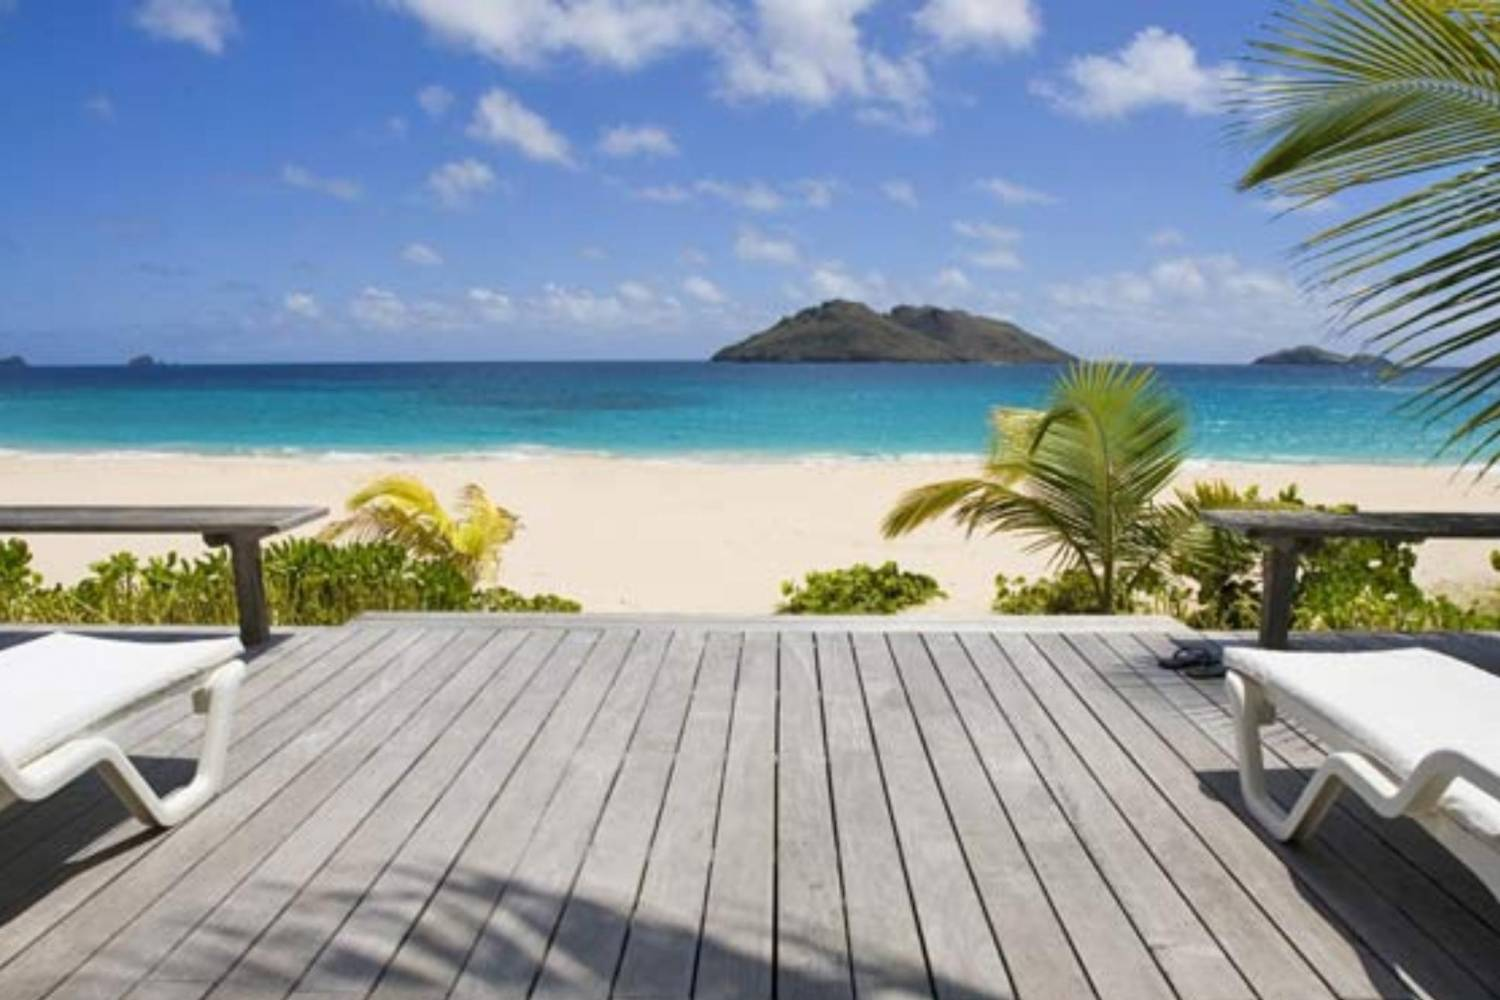 Have a Private Chef come to your house! The most innovative service is now available at Flamands Beach, St. Barts, header